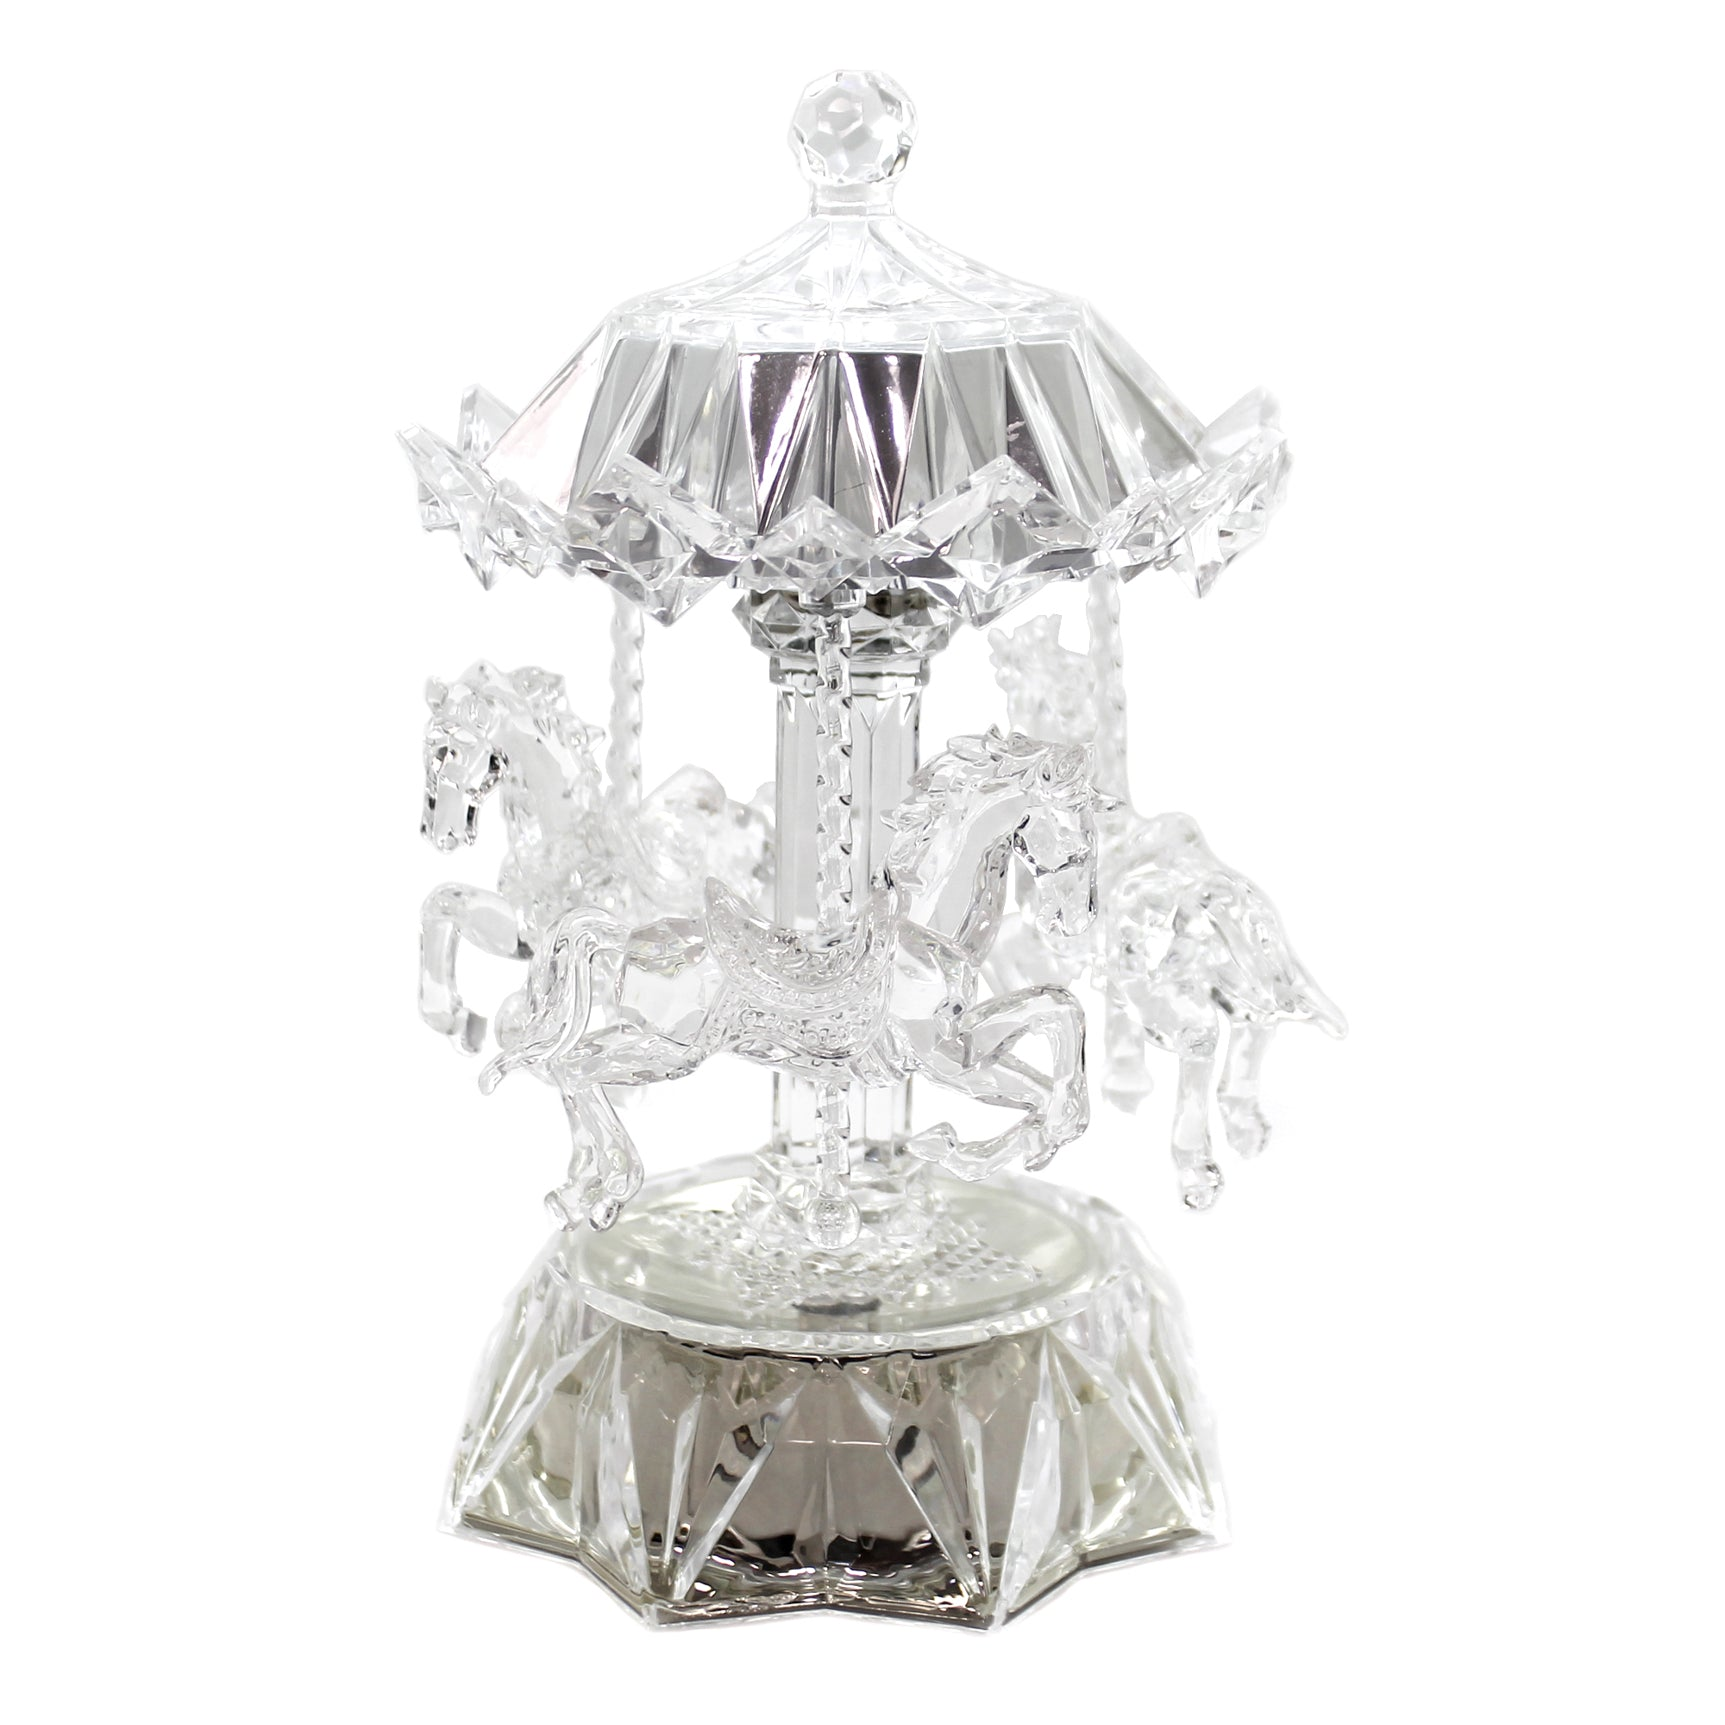 Home Decor Lighted Acrylic Carousel 53059 Sbkgifts Com Sbkgifts Com